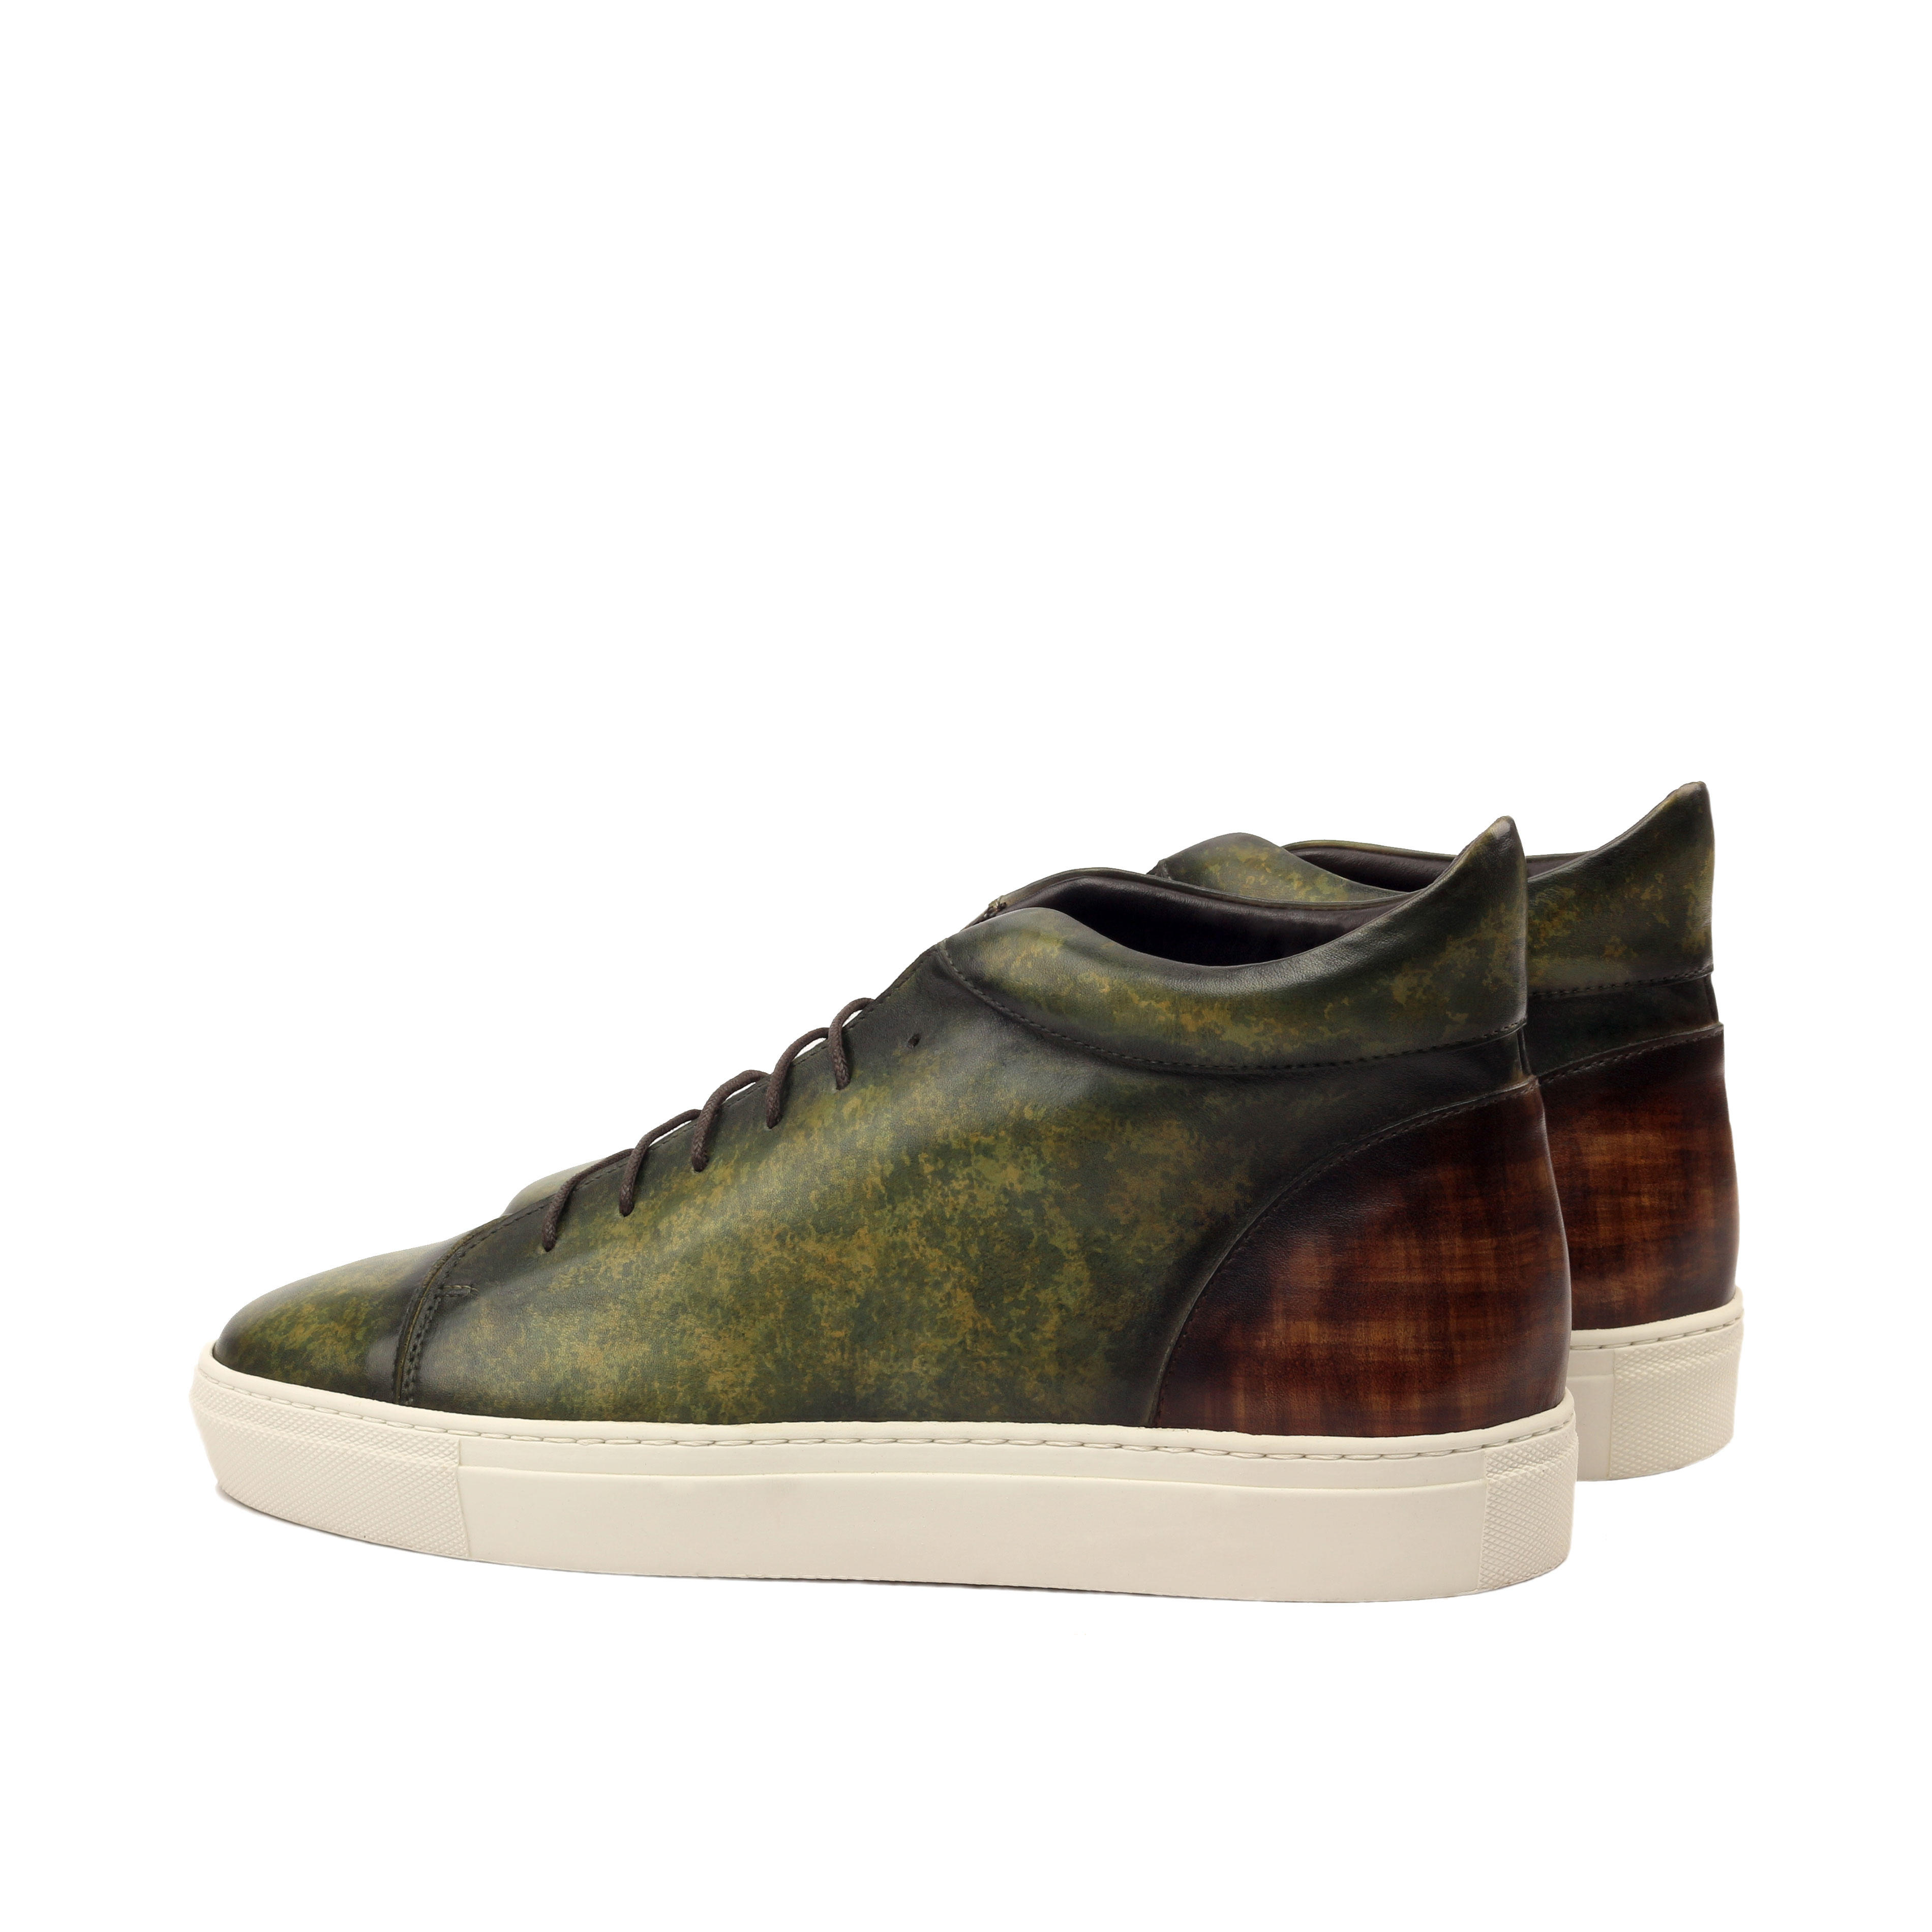 Manor of London 'The Joshua' Brown & Khaki Patina Calfskin High-Top Trainer Luxury Custom Initials Monogrammed Back Side View